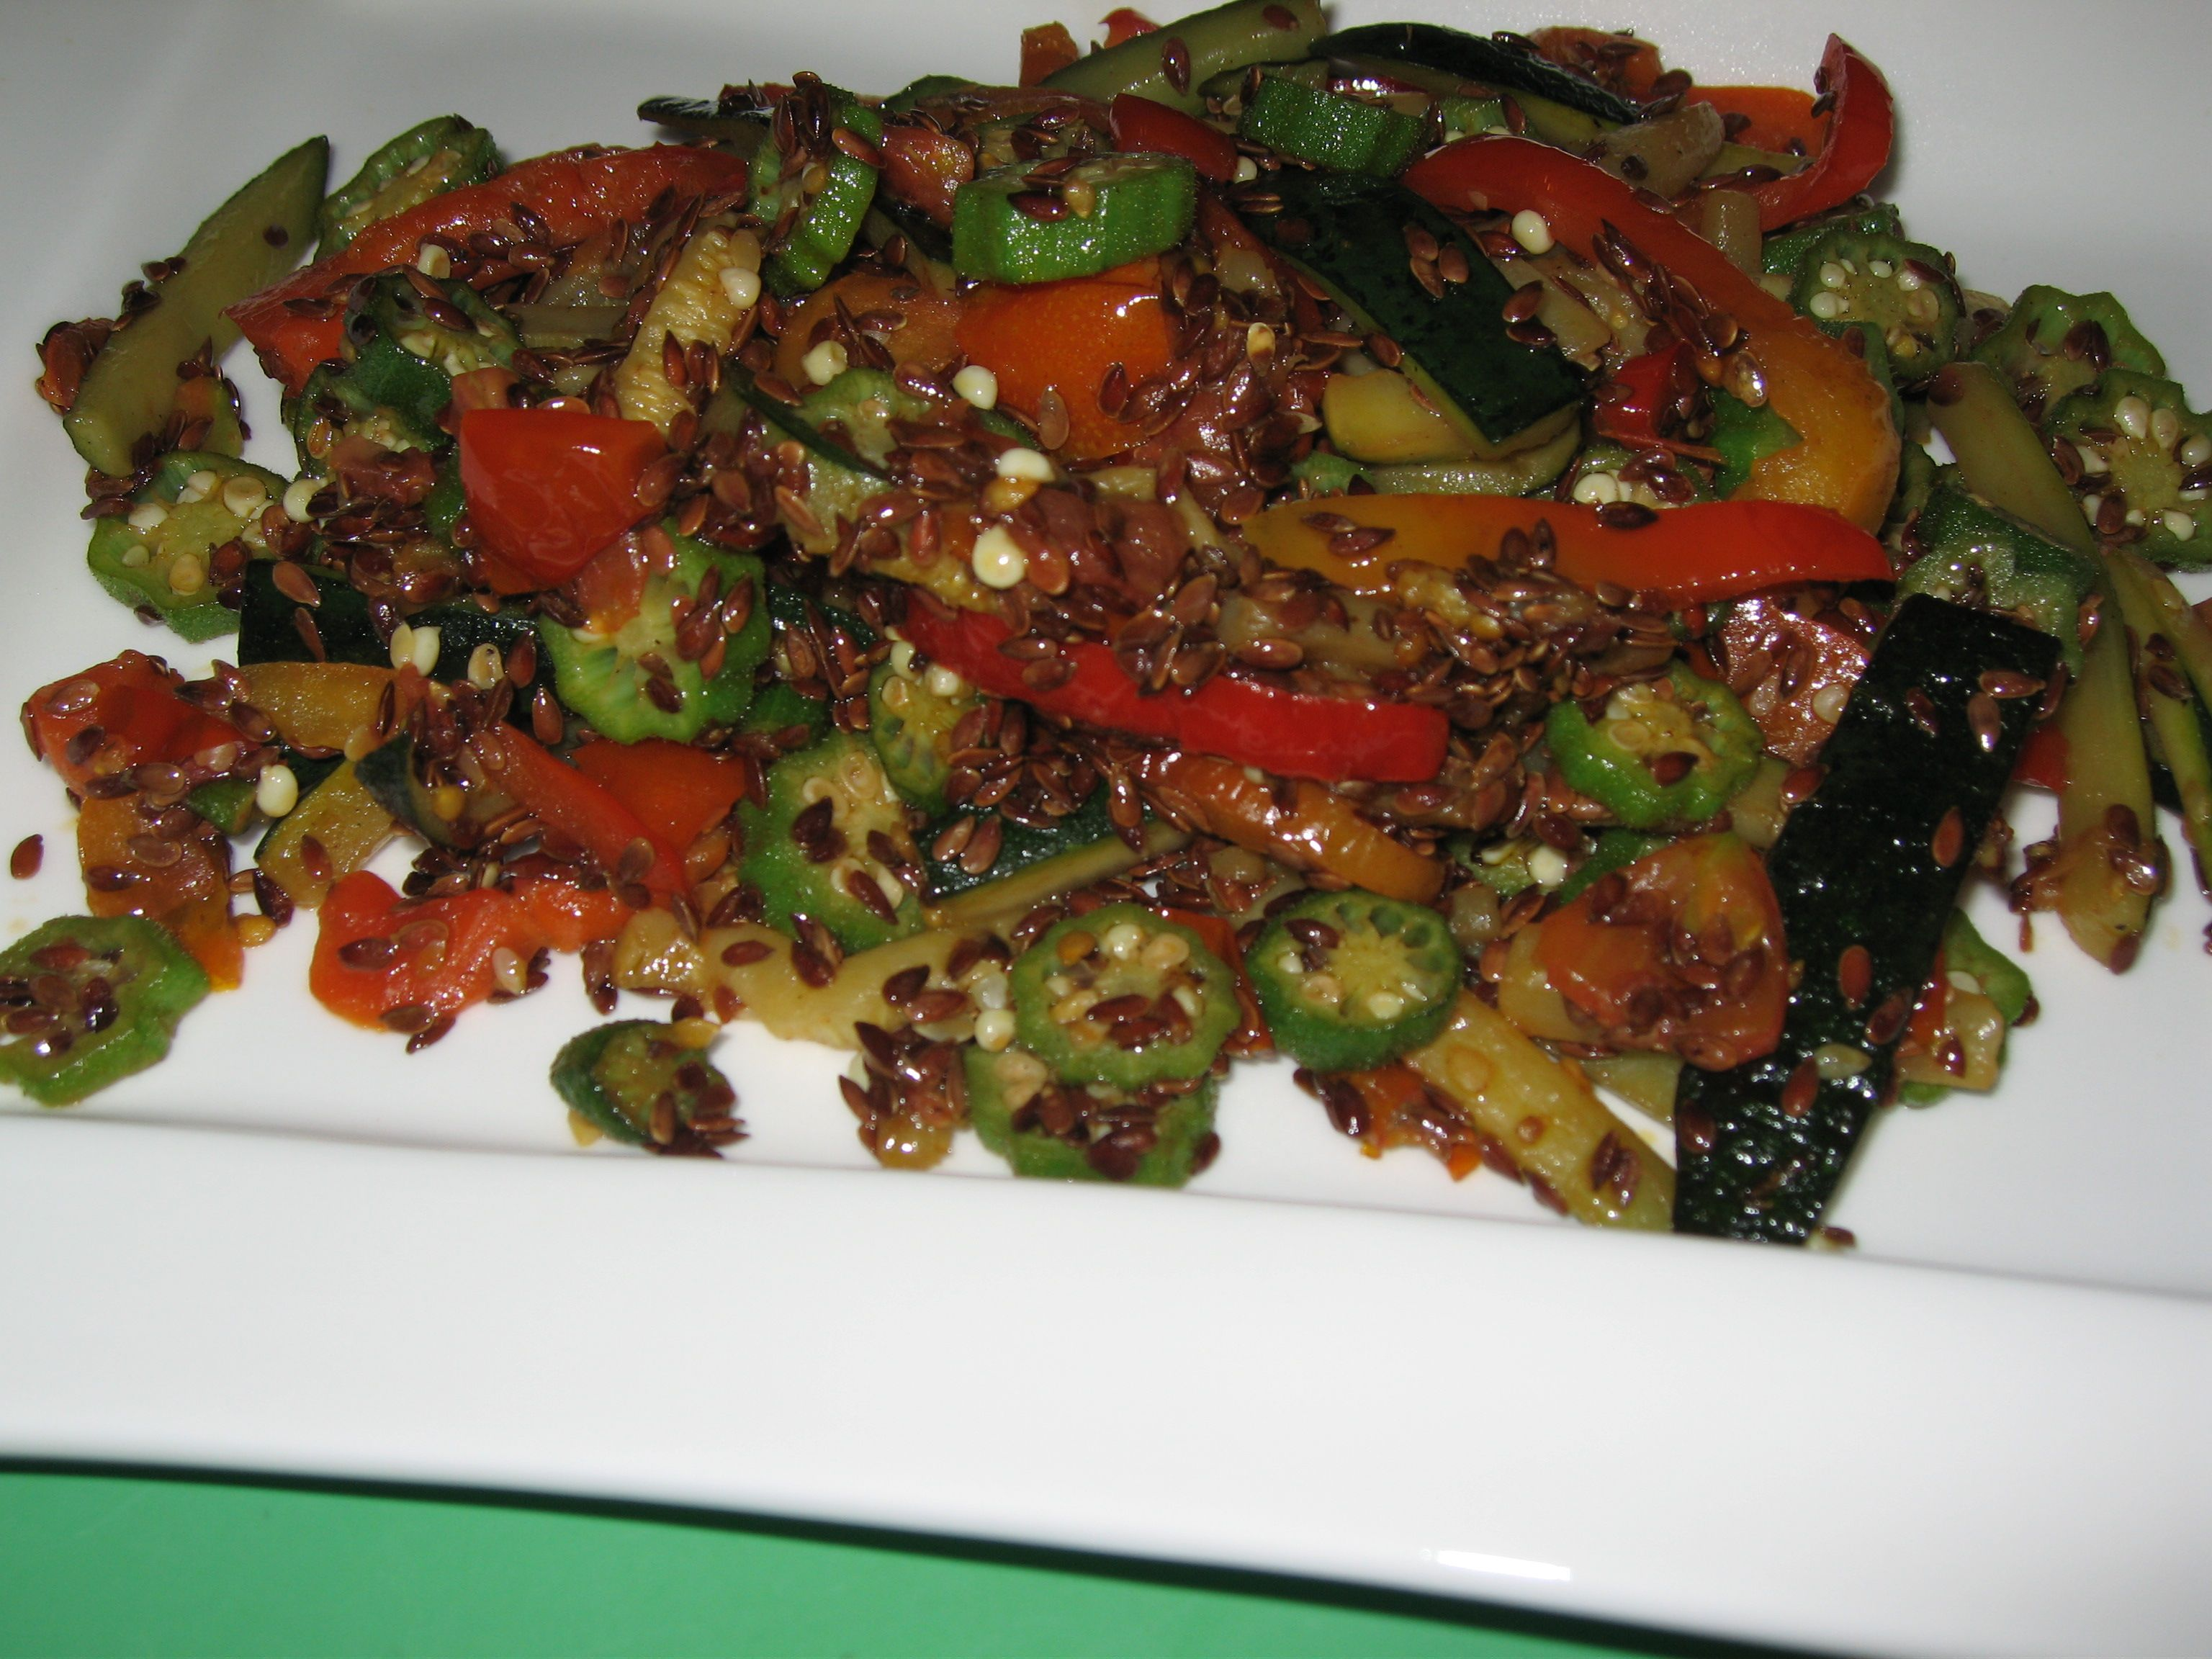 stir-fry with linseeds